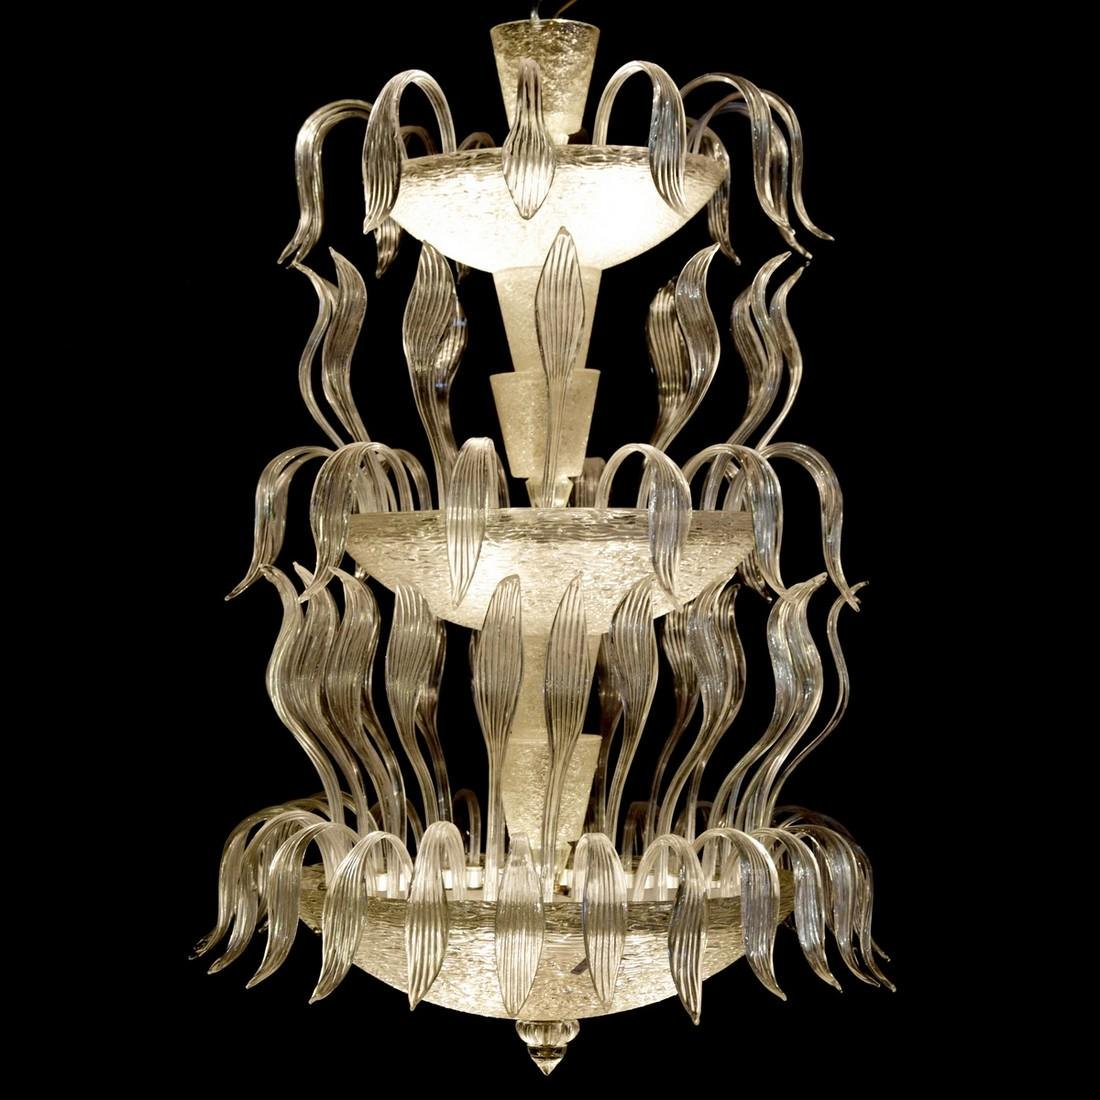 Monumental Tiered Chandelier, Manner of Barovier & Toso